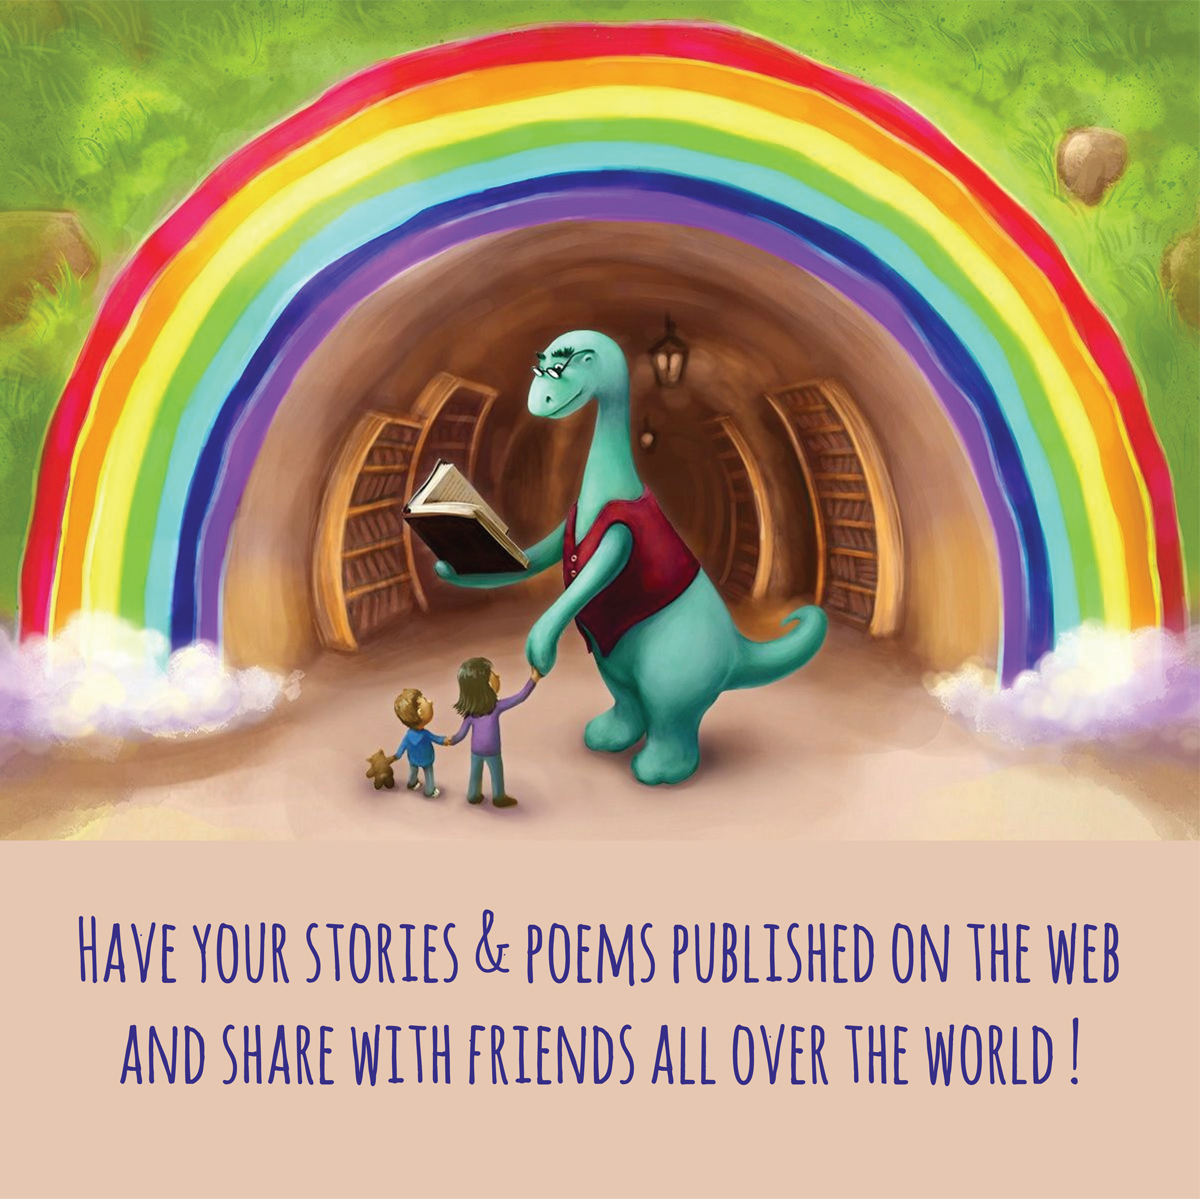 Litrasaurus: have your stories published on the web and share with friends all over the world